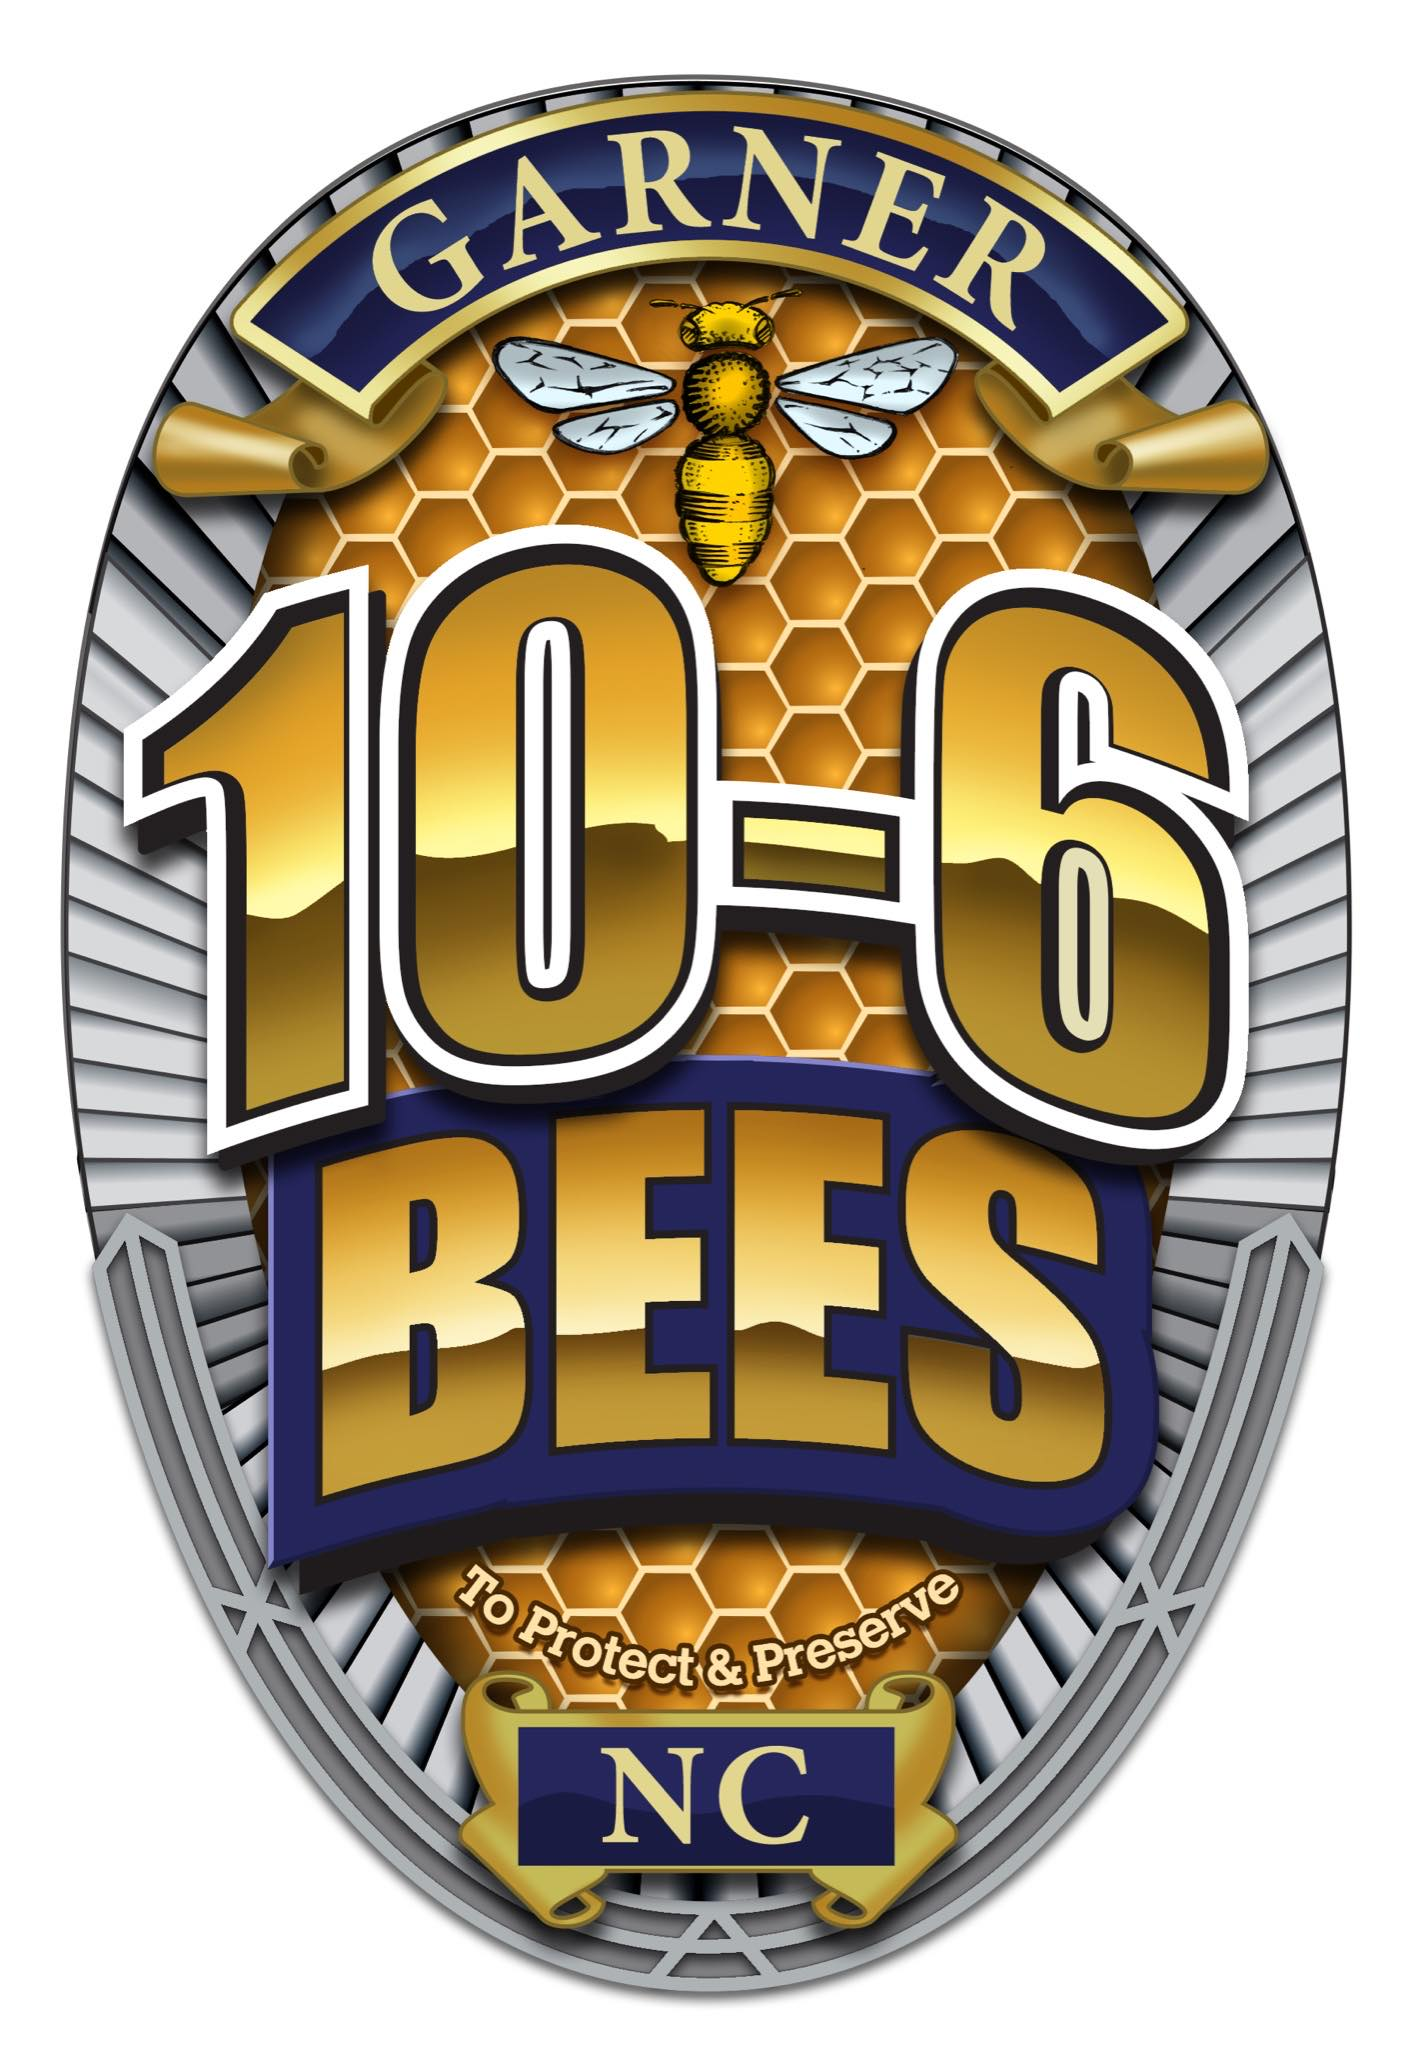 10-6bees